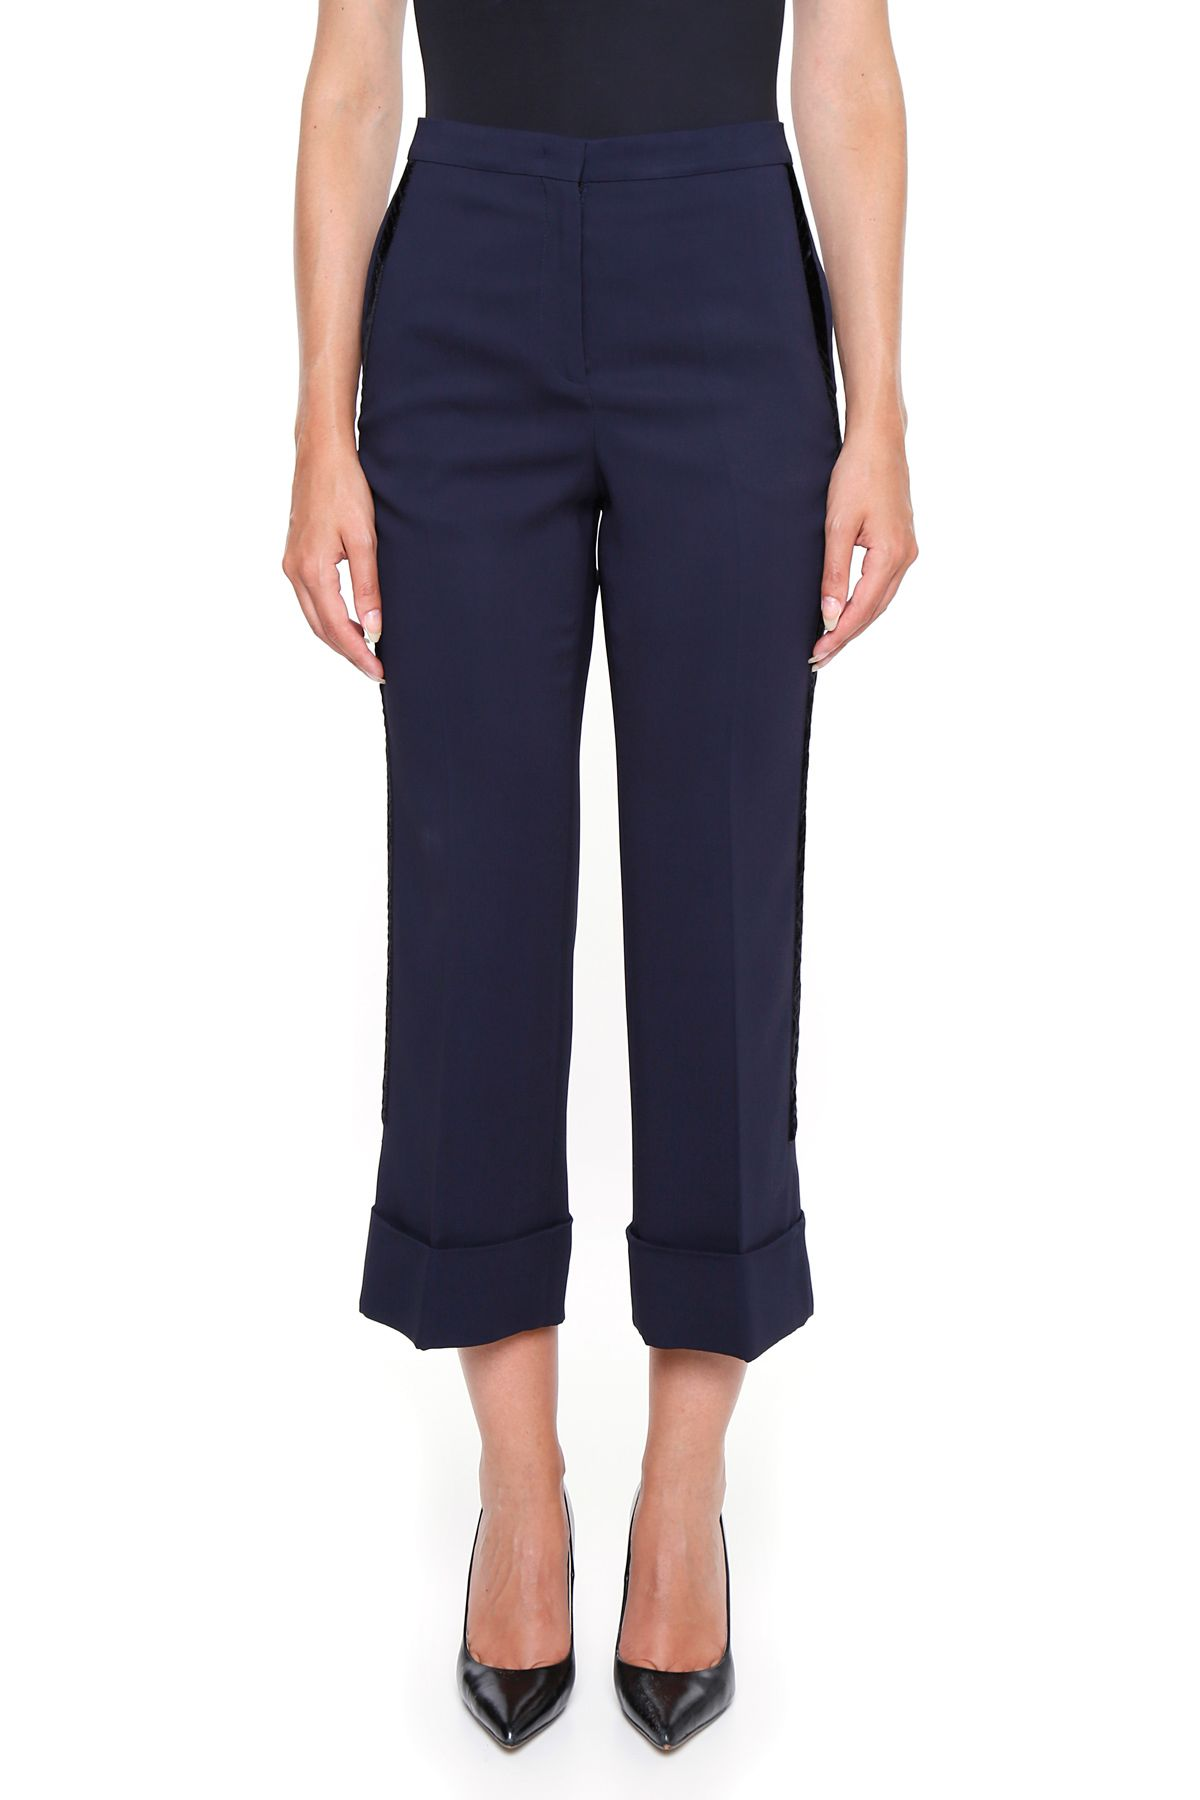 Soft and comfy wide-leg cropped pant with tie-front elastic waist and pockets. Fully lined. Imported.